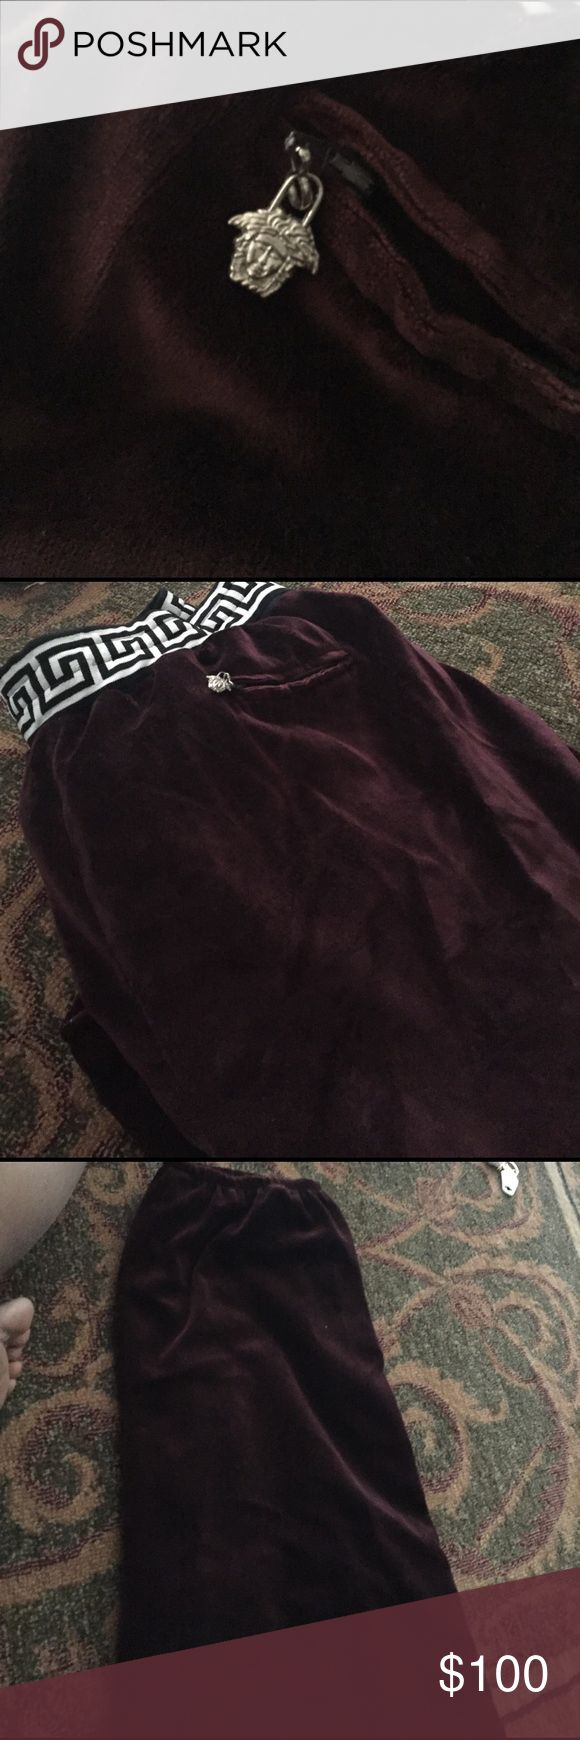 Versace velour pants size 3x or 4x Worn a by  Known rapper before he lost weight look as though they might have been custom made no label but zipper with Versace authenticity is not known sold as is and can not authentic items no rips very good condition Versace Pants Sweatpants & Joggers